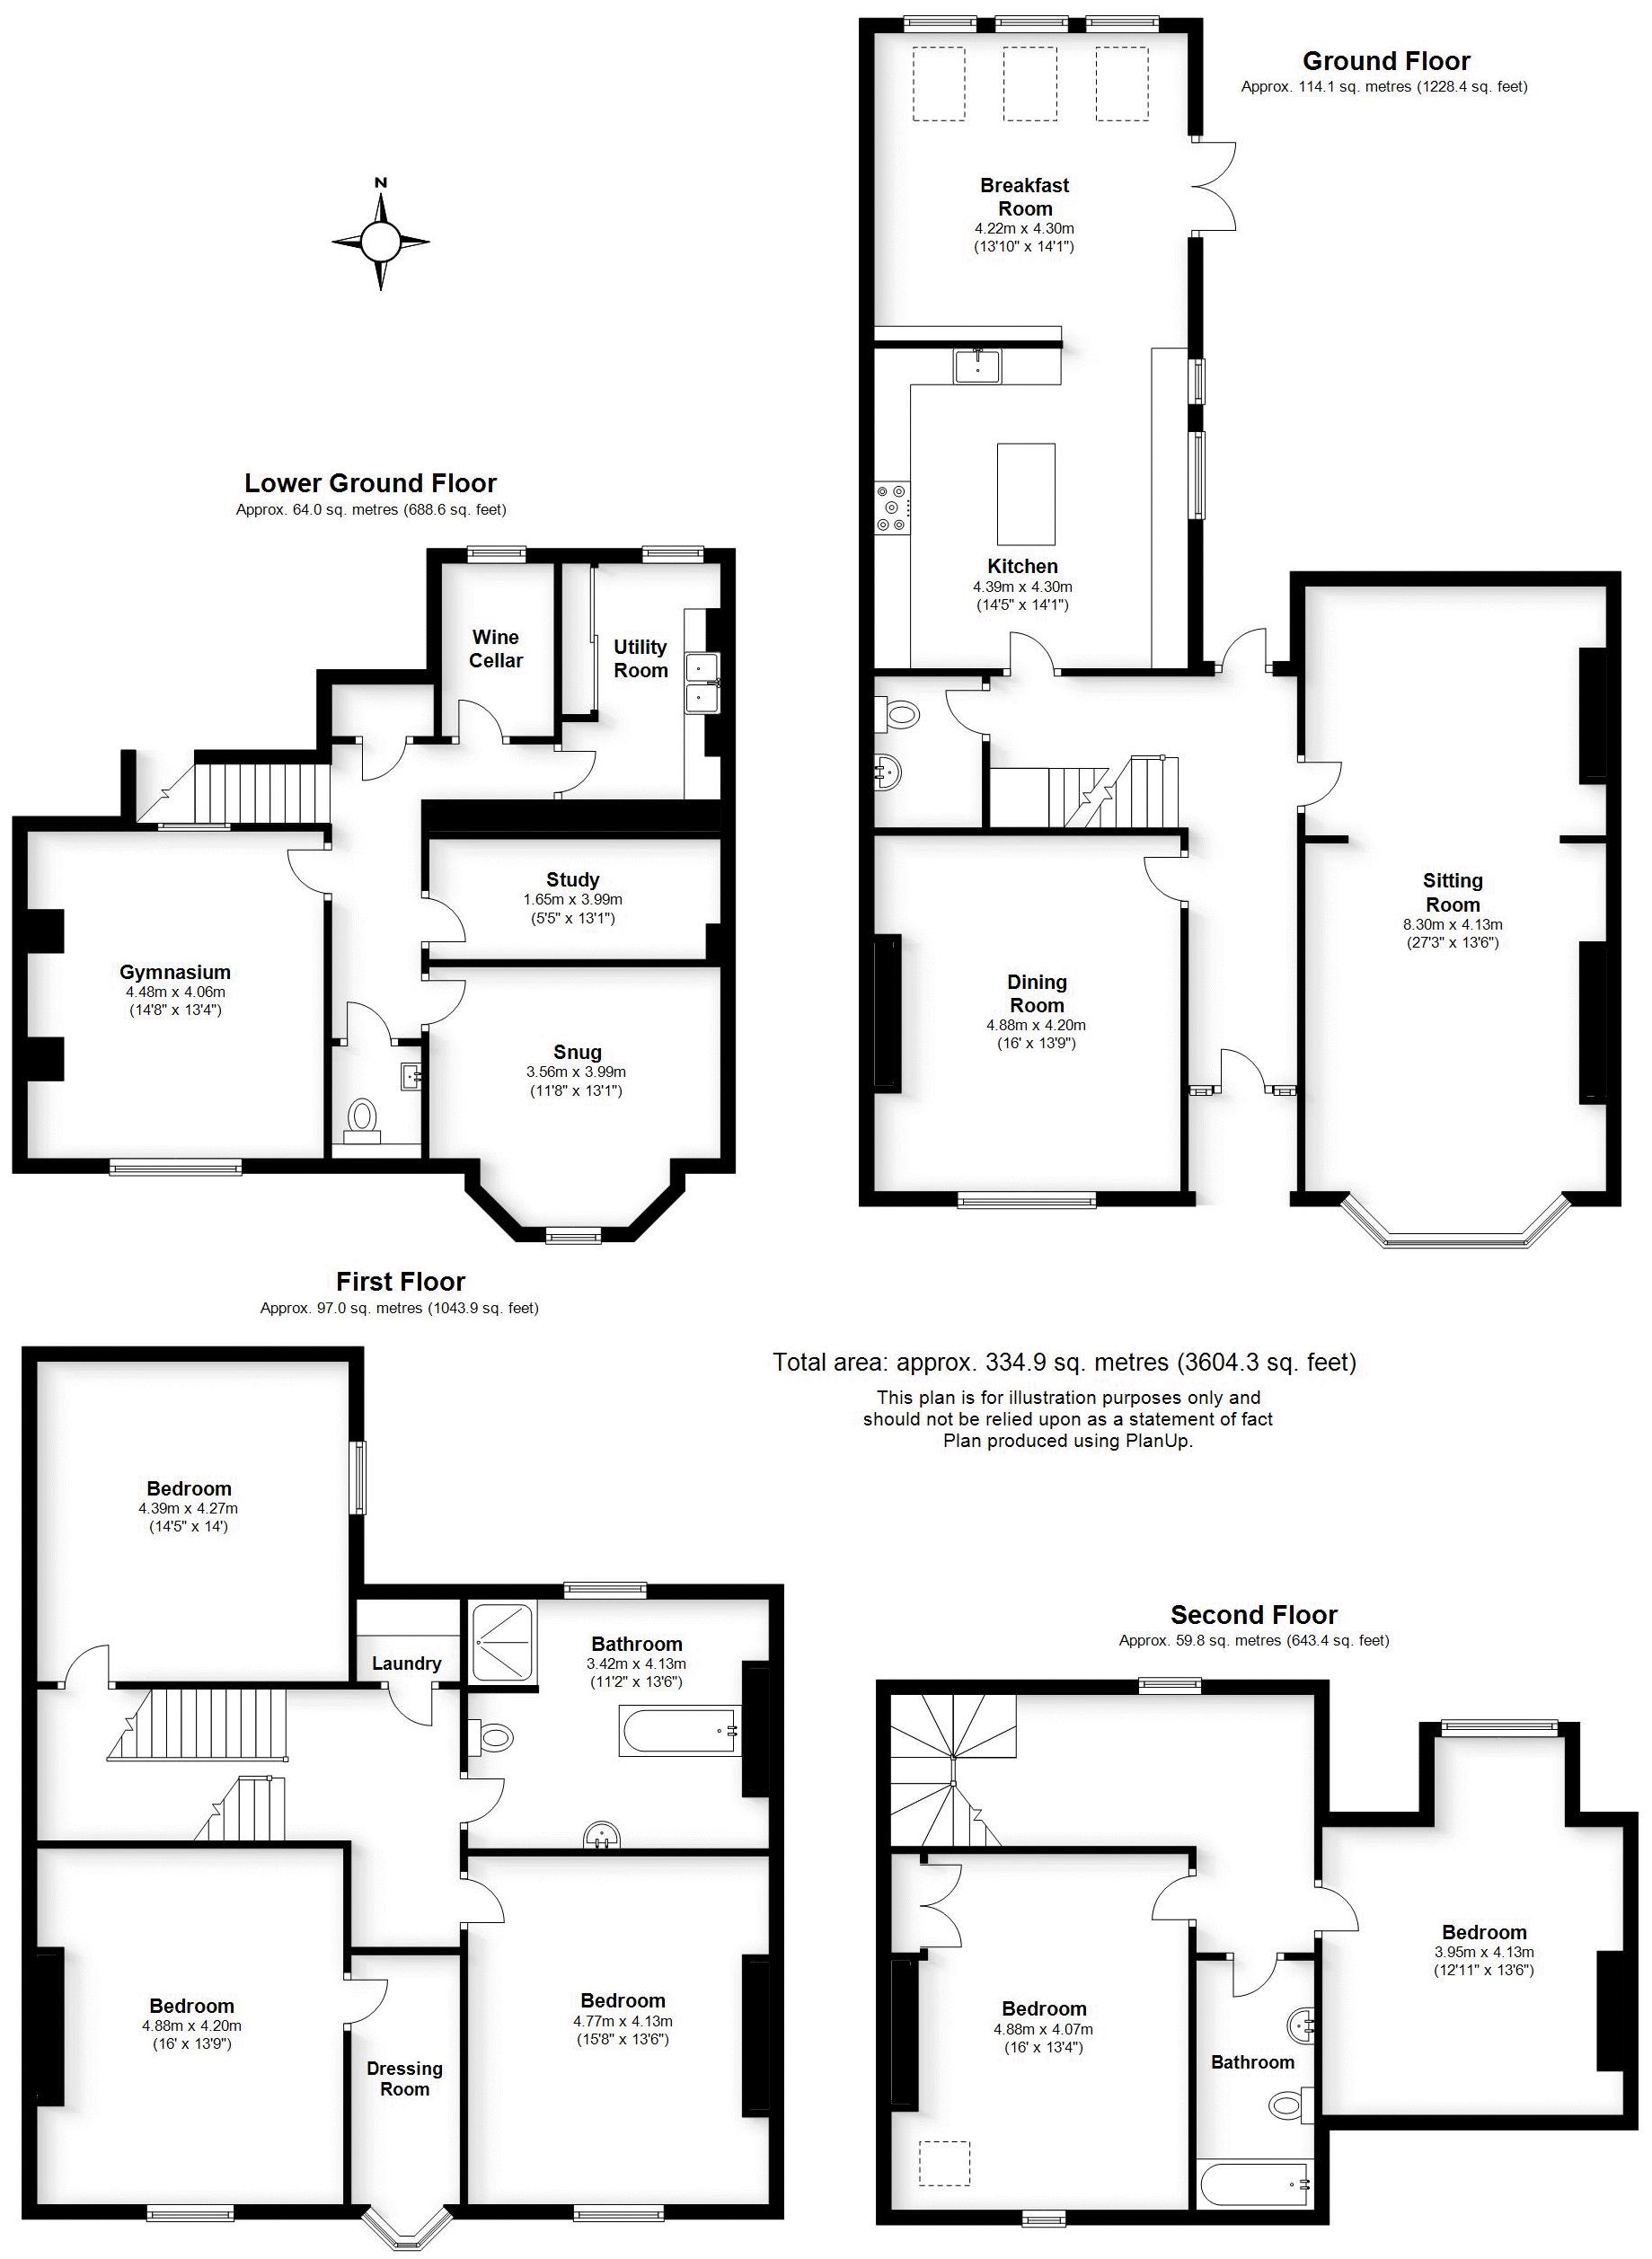 Beauchamp Avenue, Warwickshire. Floorplan.